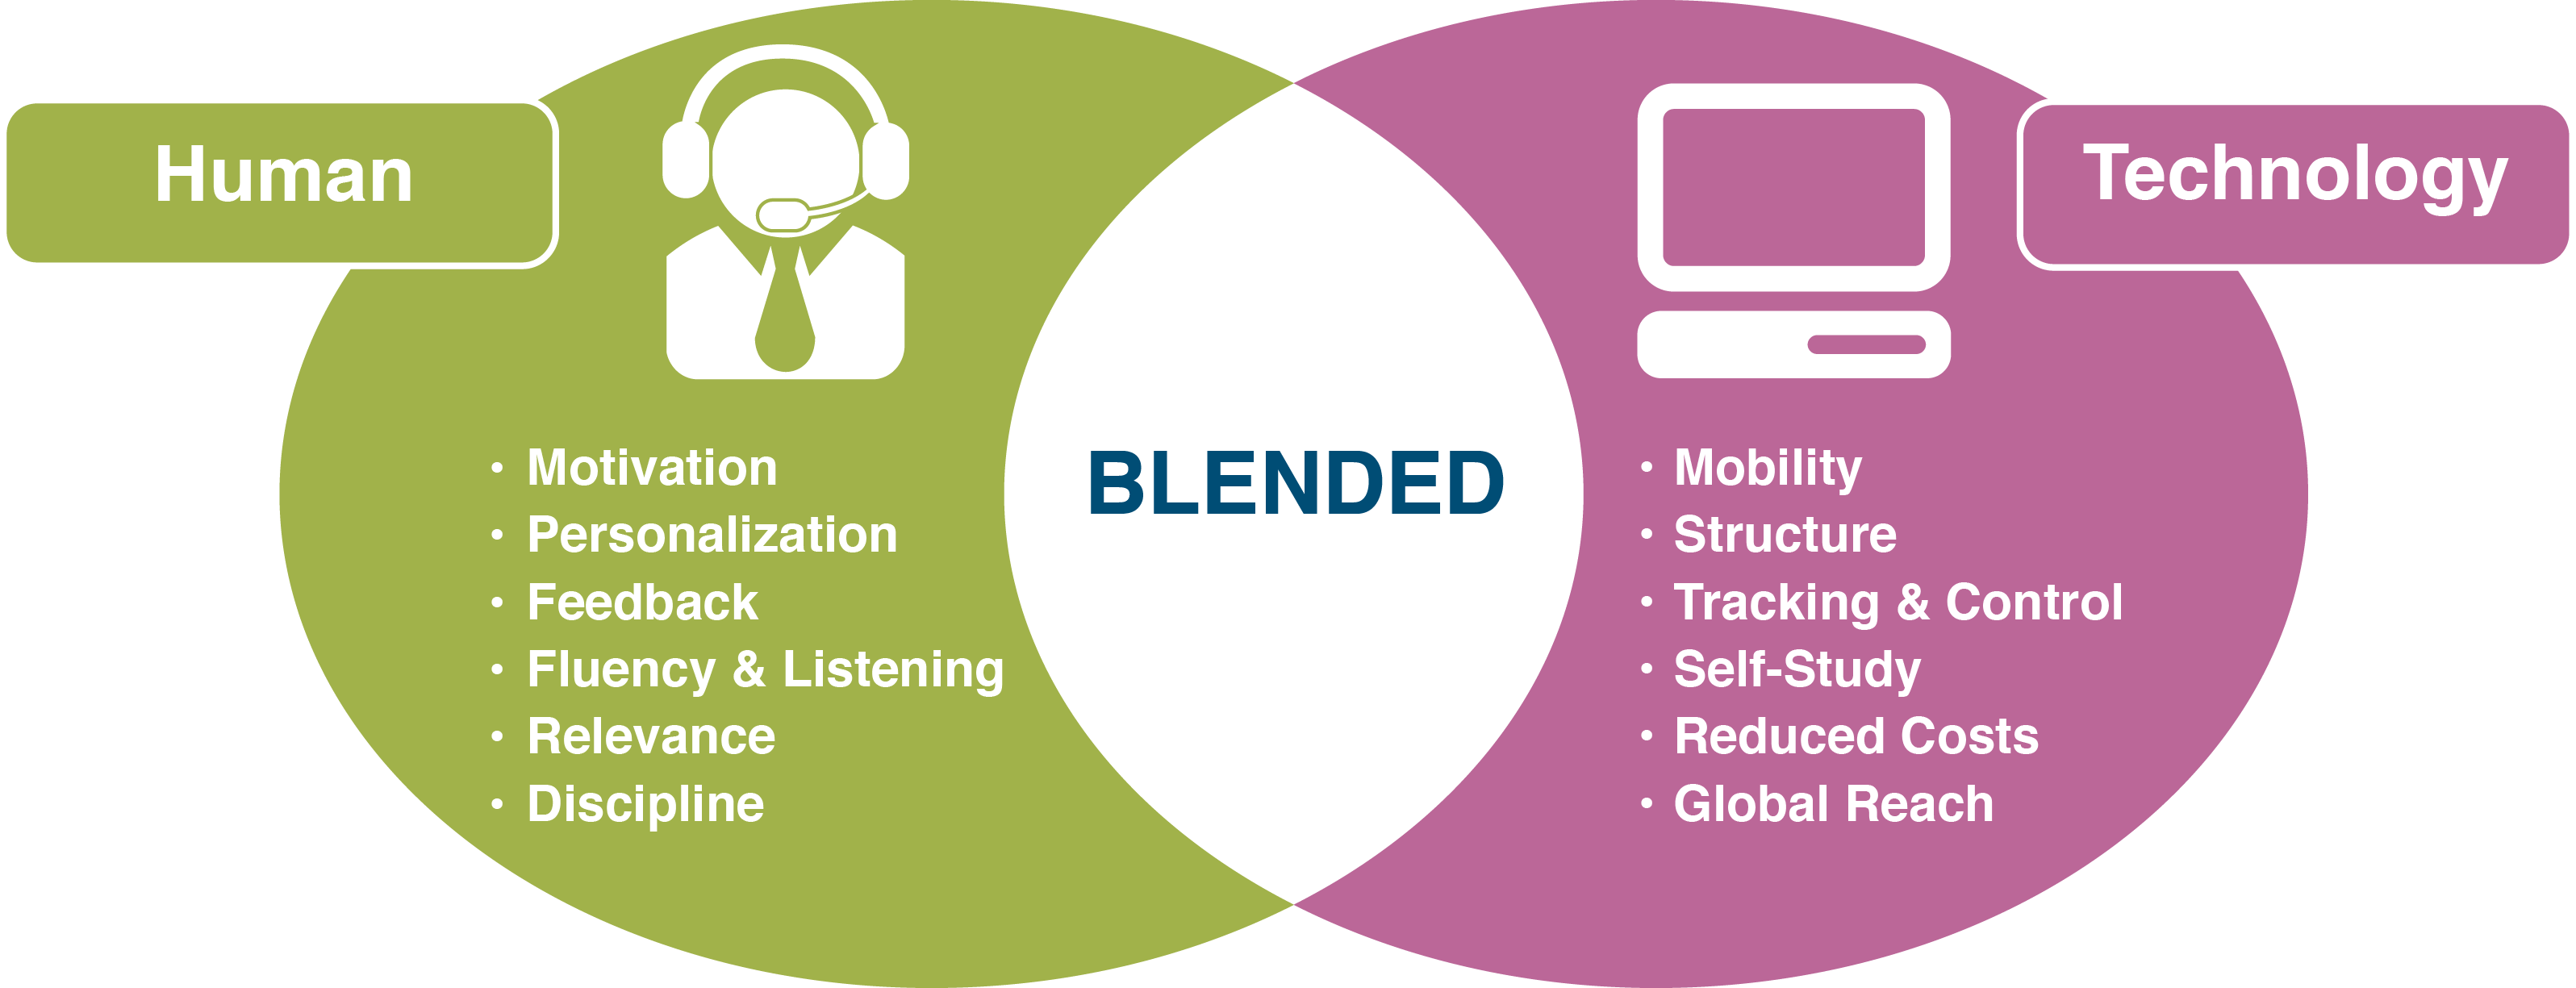 BlendedLearning_venn_diagram